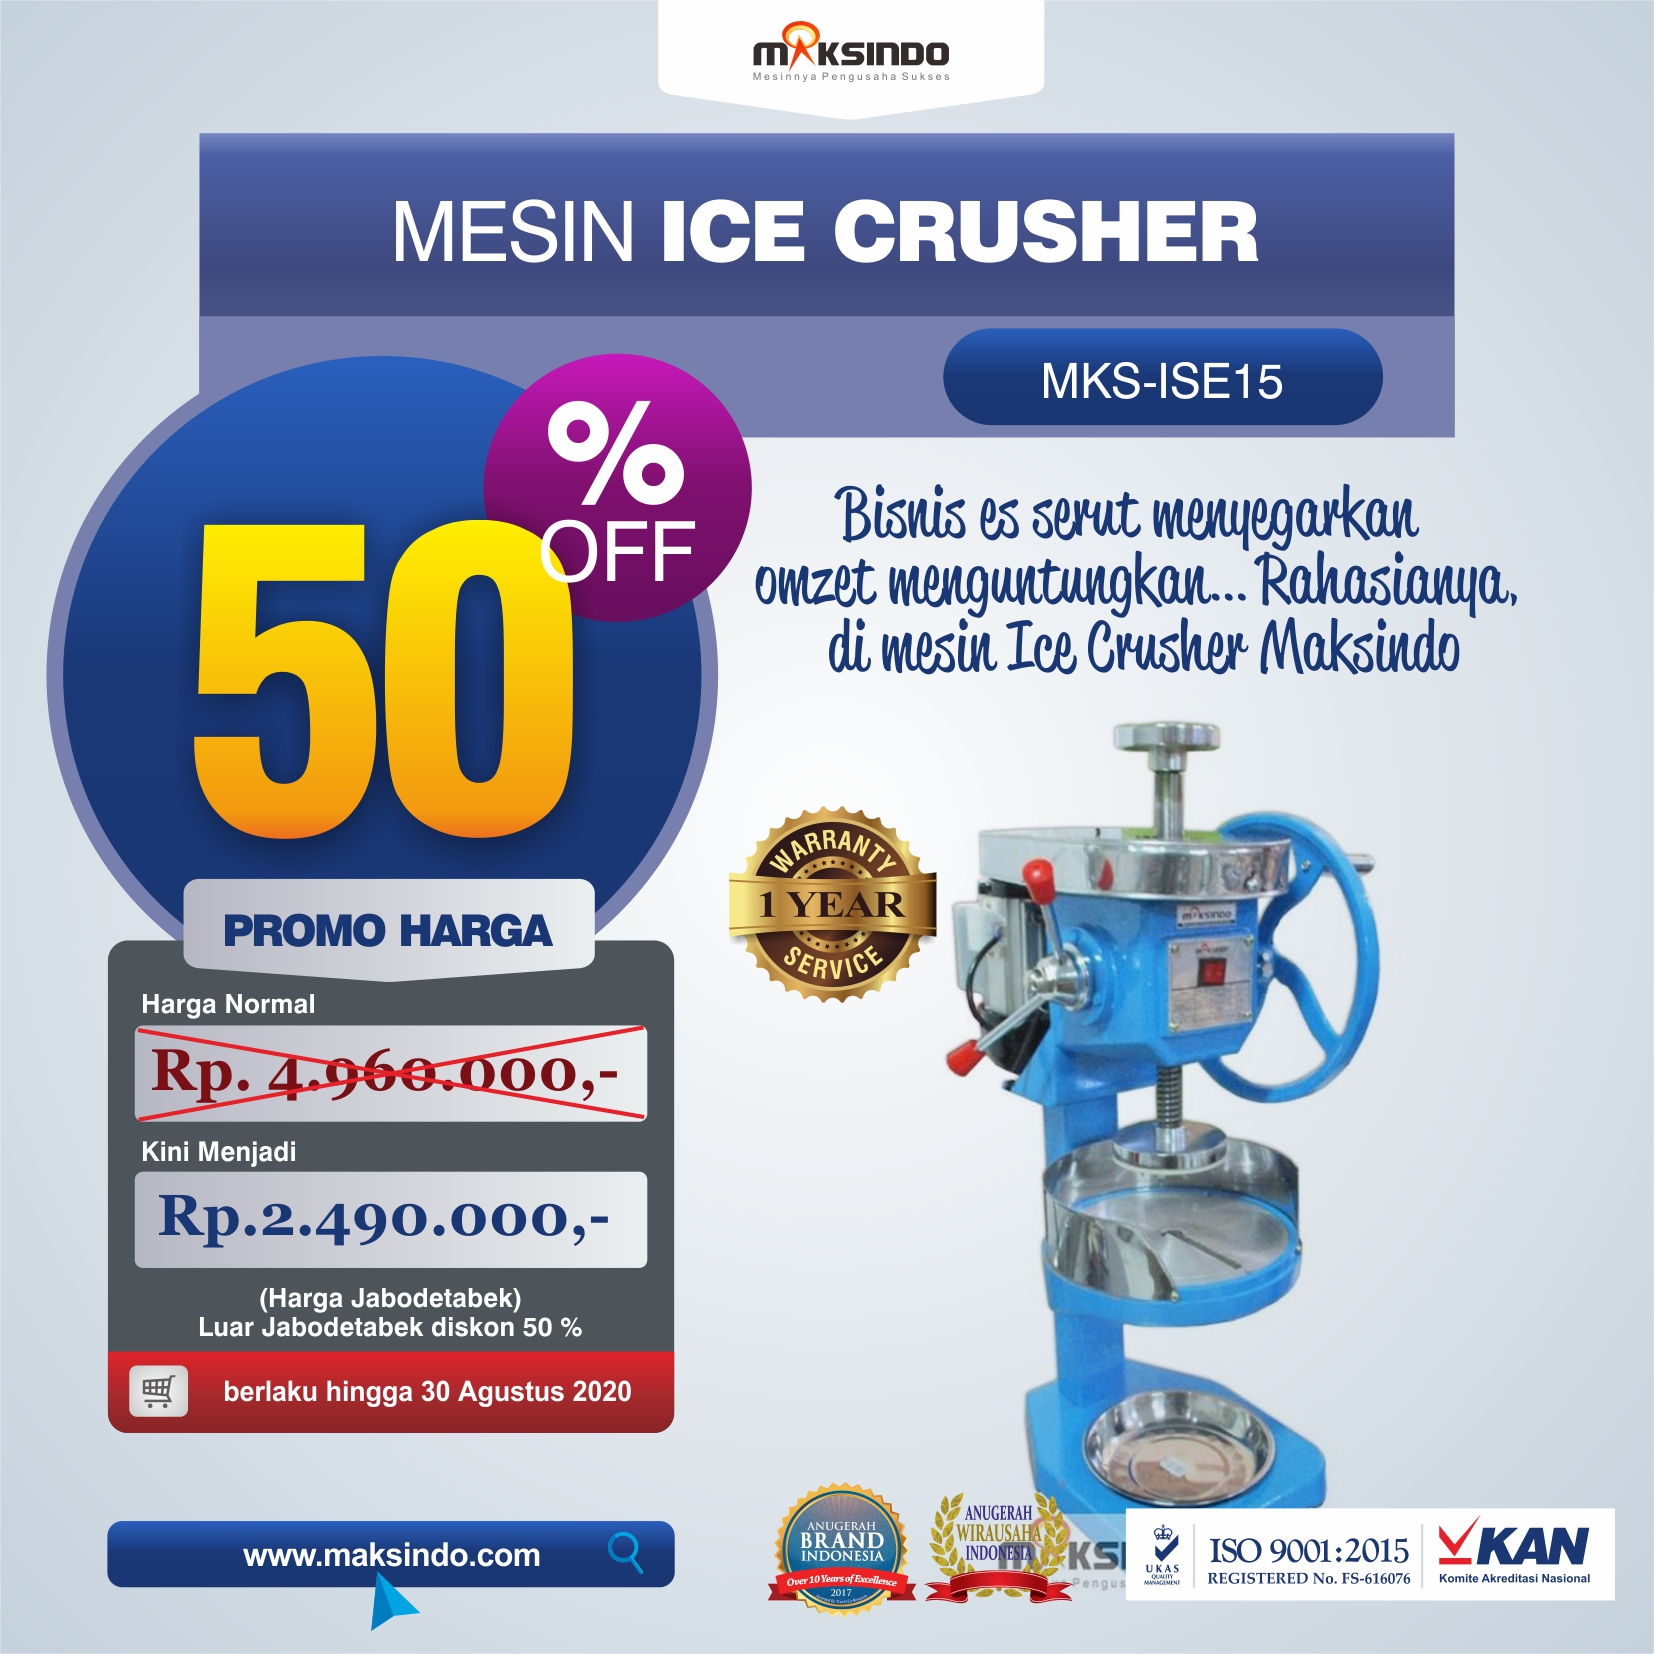 Jual Mesin Ice Crusher MKS-ISE15 di Banjarmasin